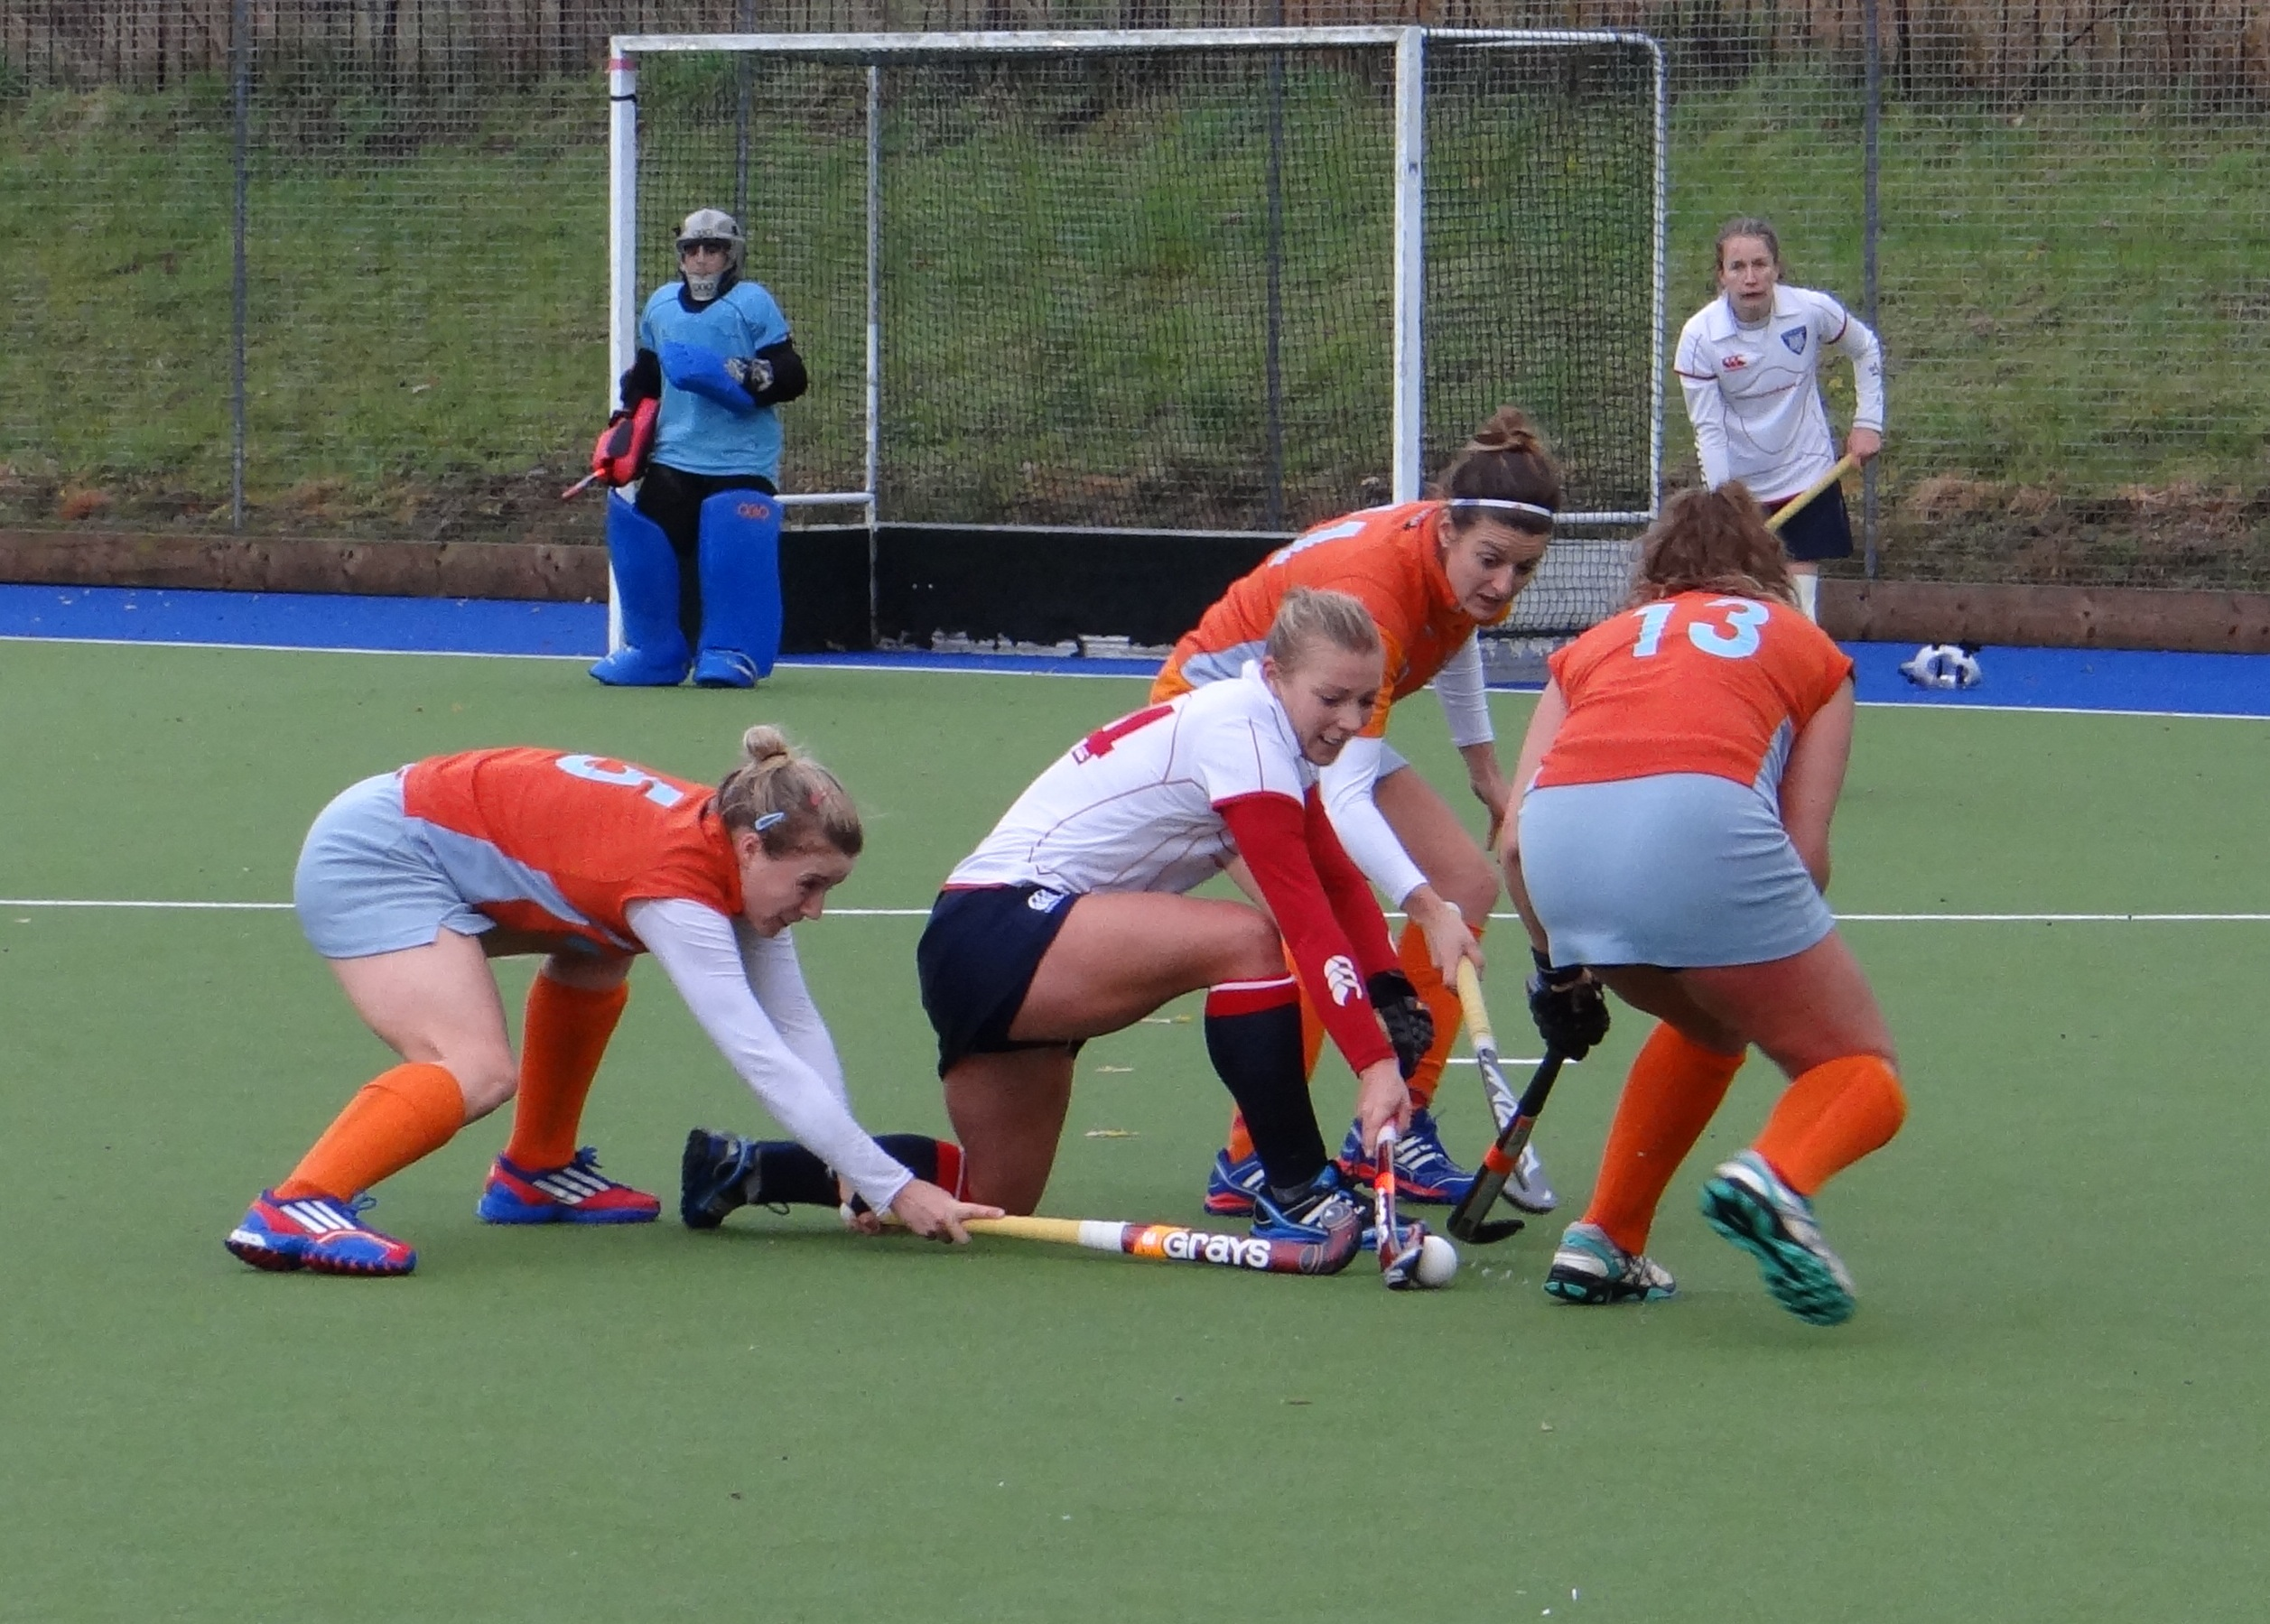 Clydesdale Western in Cup Final 24th May GNHC